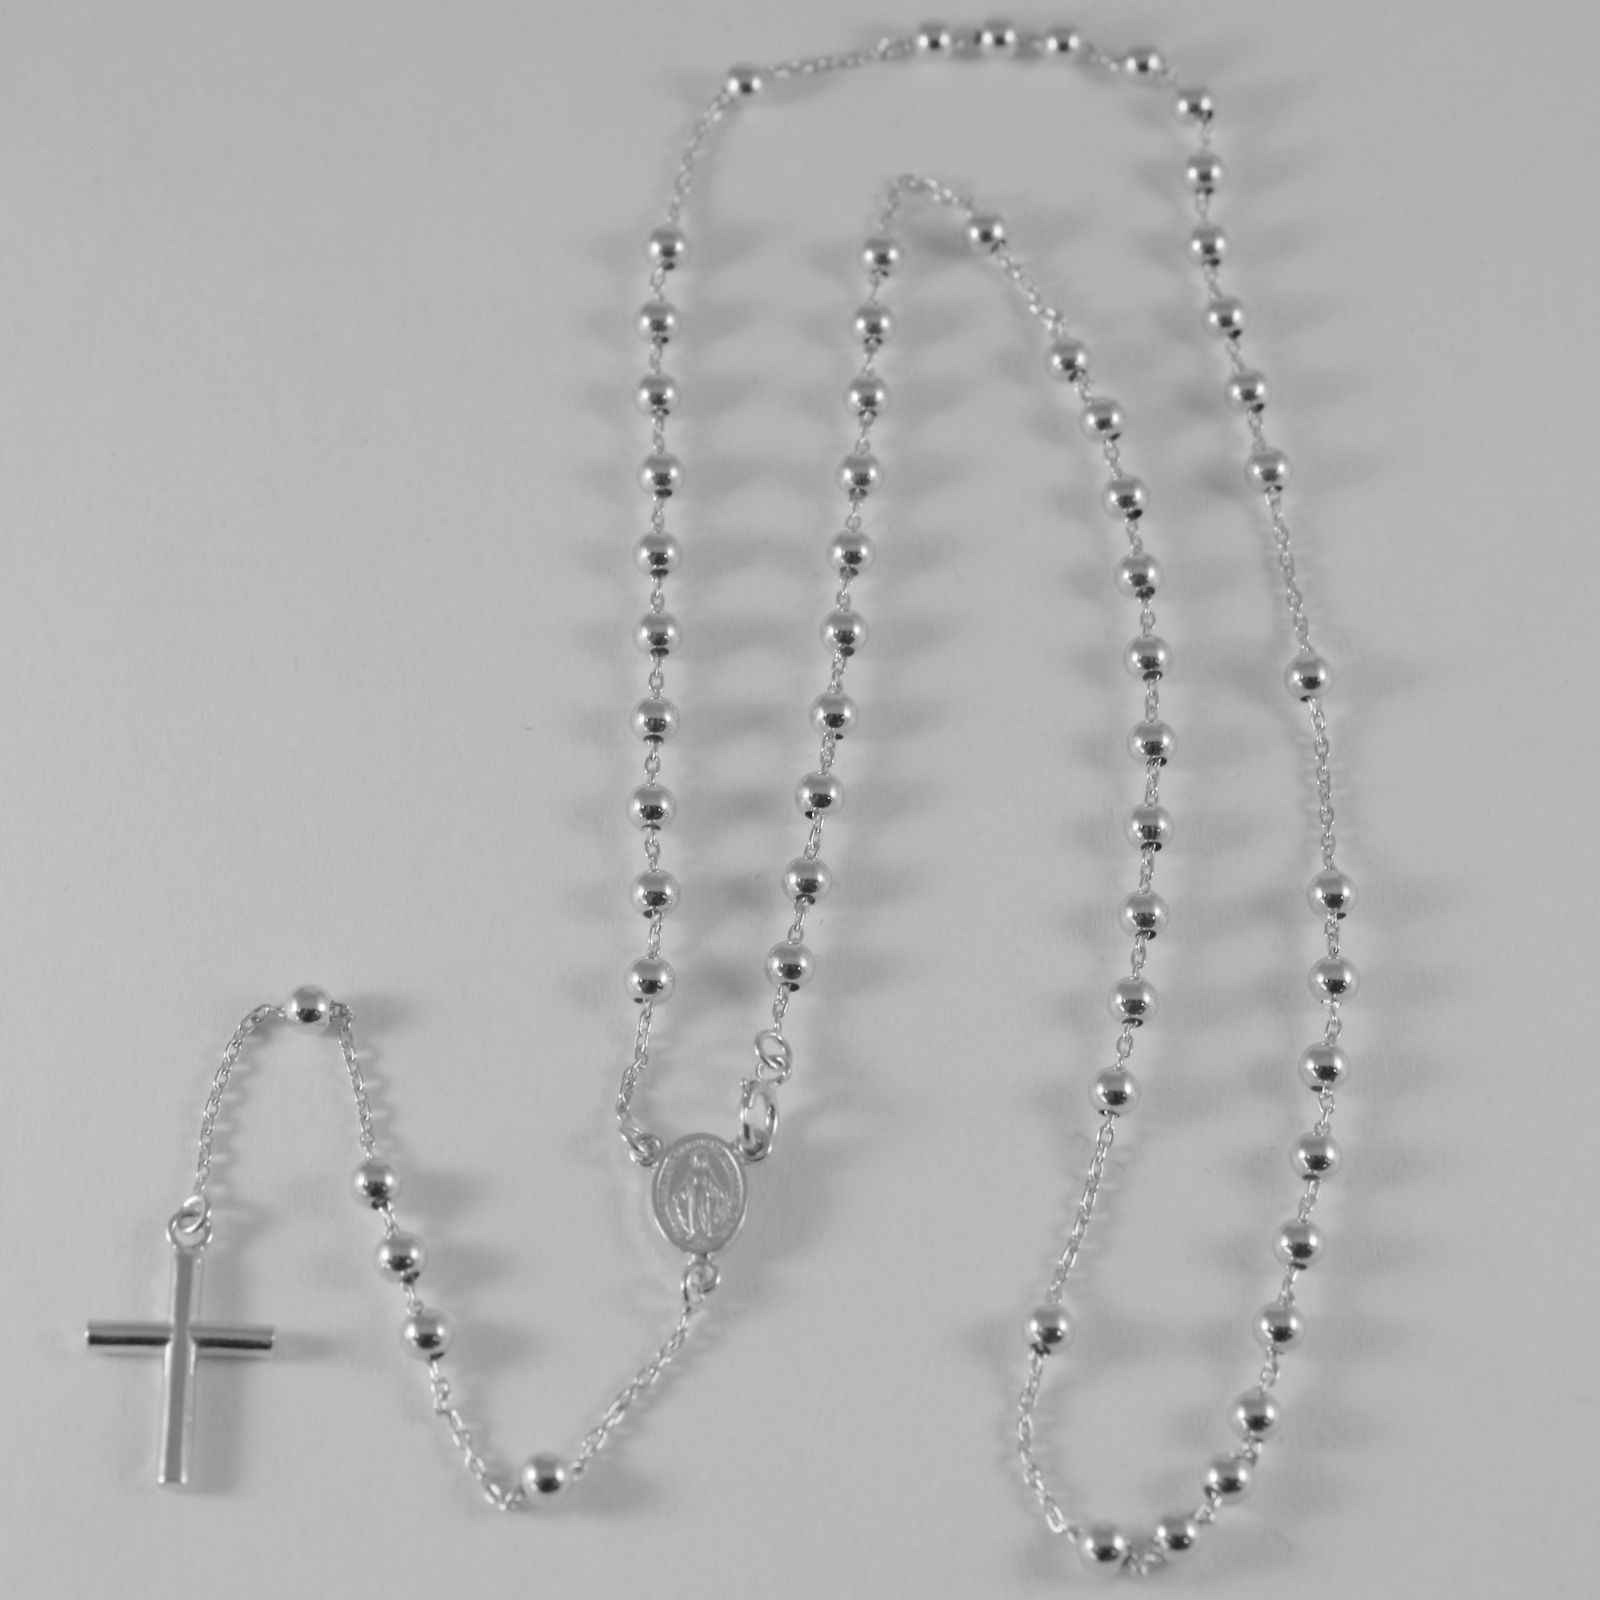 18K WHITE GOLD ROSARY NECKLACE MIRACULOUS MARY MEDAL & CROSS PENDANT ITALY MADE